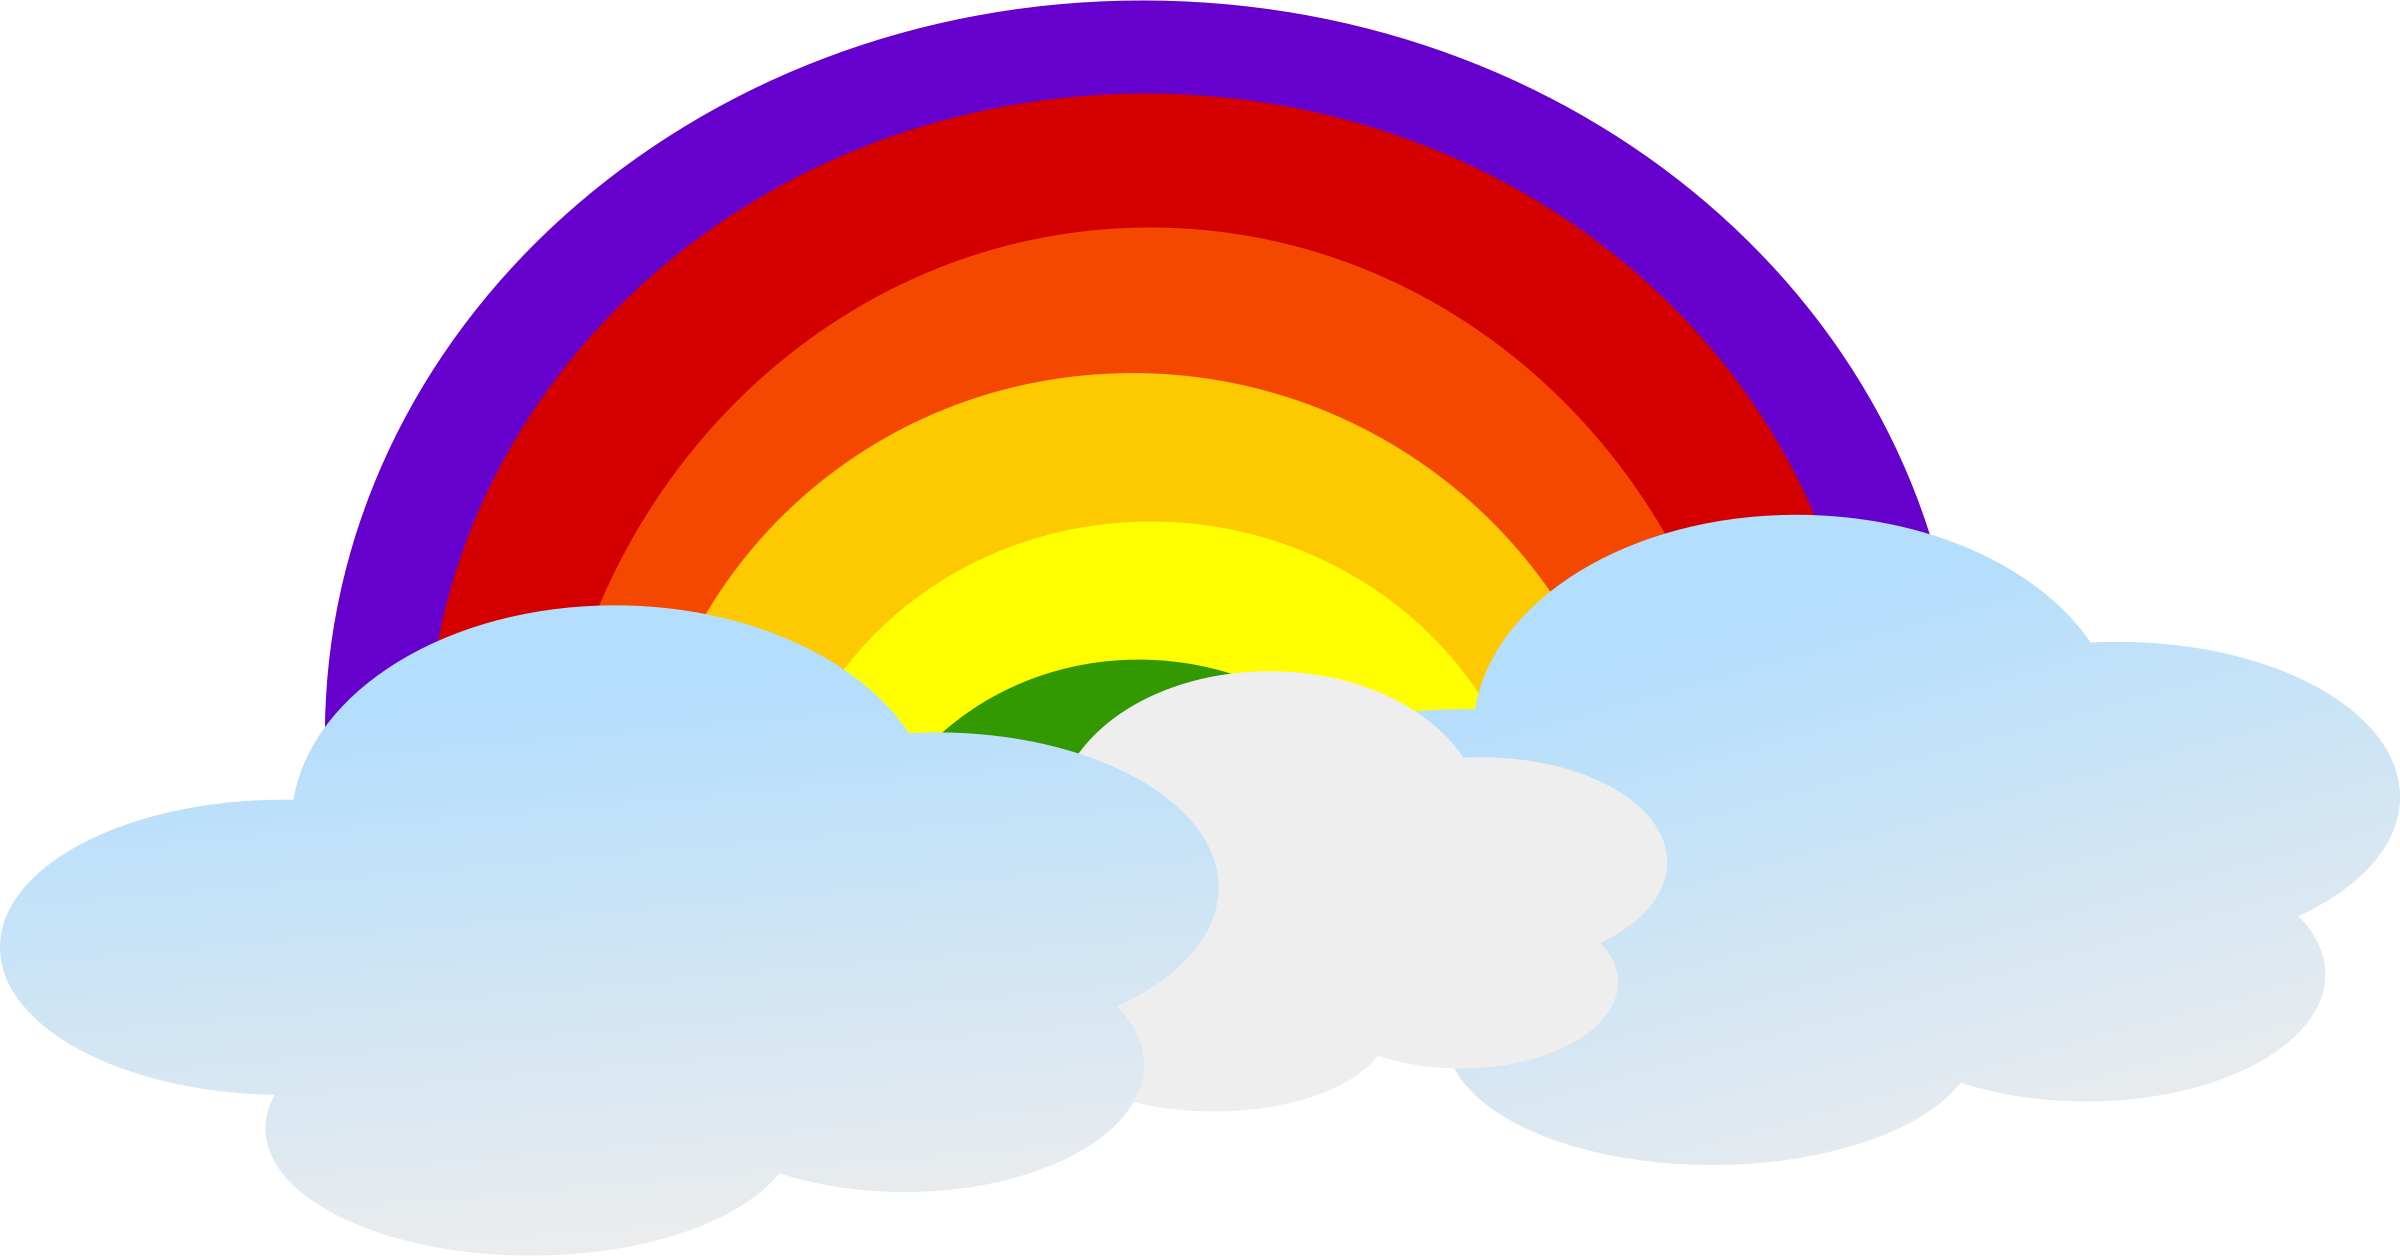 Drawn rainbow psd Clipart Free Free on Clouds